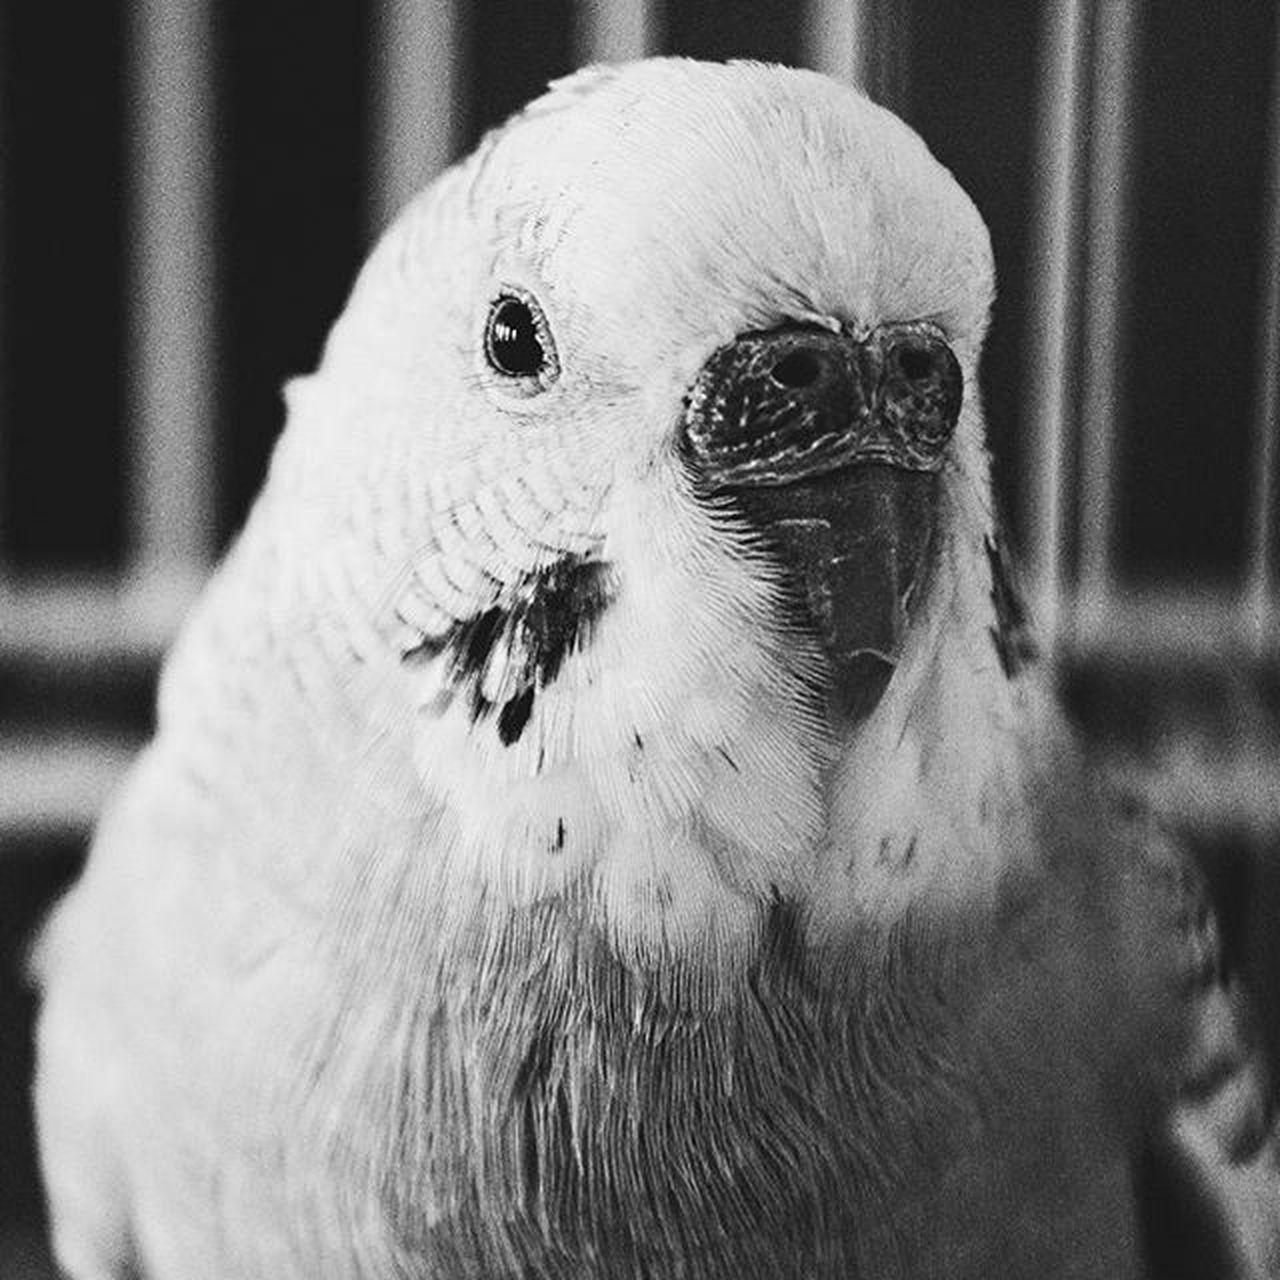 bird, close-up, animal themes, one animal, focus on foreground, no people, day, beak, animals in the wild, indoors, domestic animals, nature, mammal